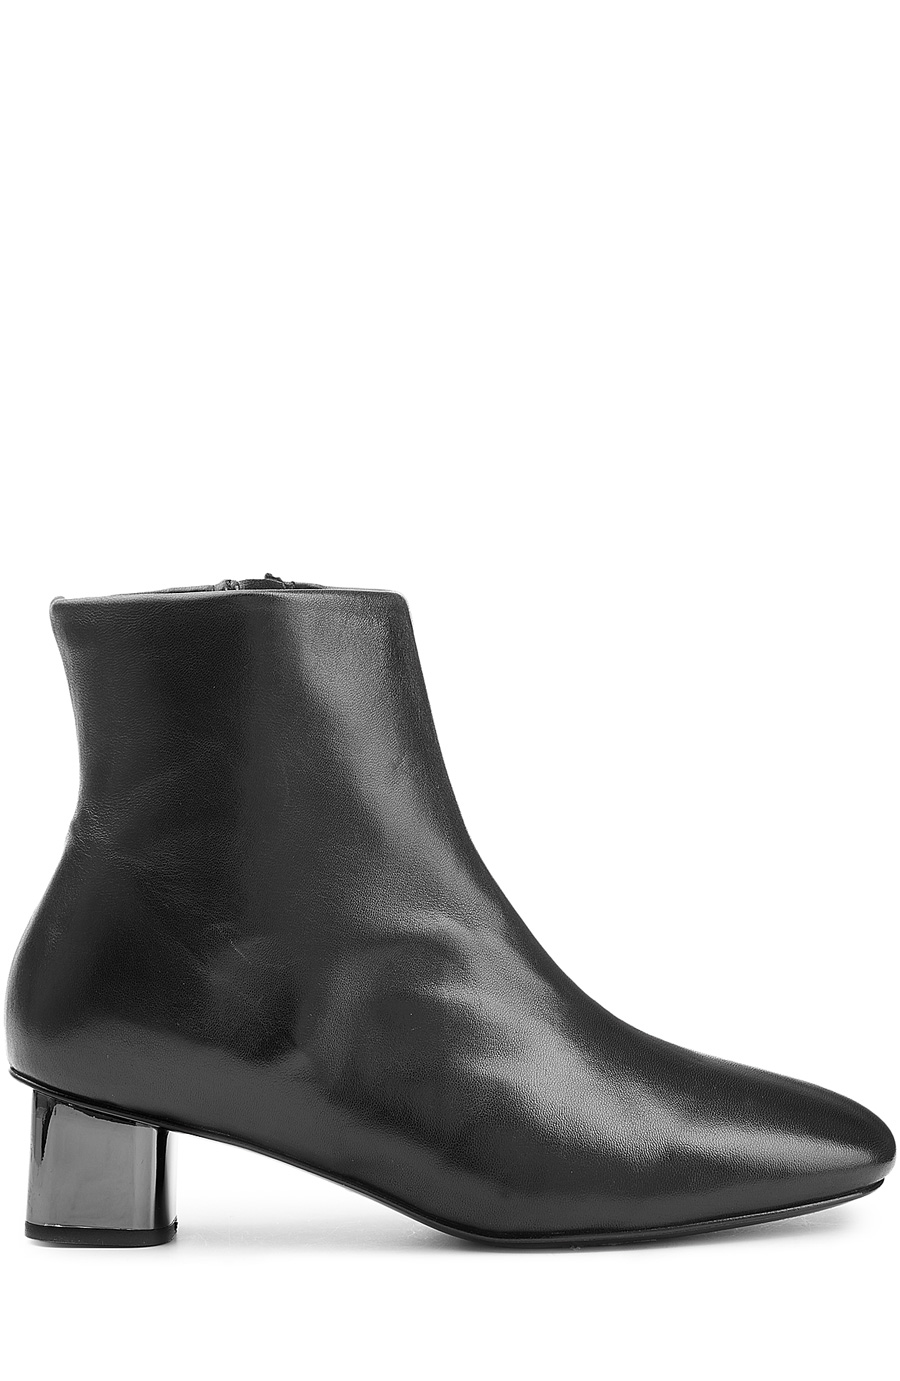 Free Shipping Manchester Great Sale Robert Clergerie Ankle Boots Lowest Price Marketable vOw4b